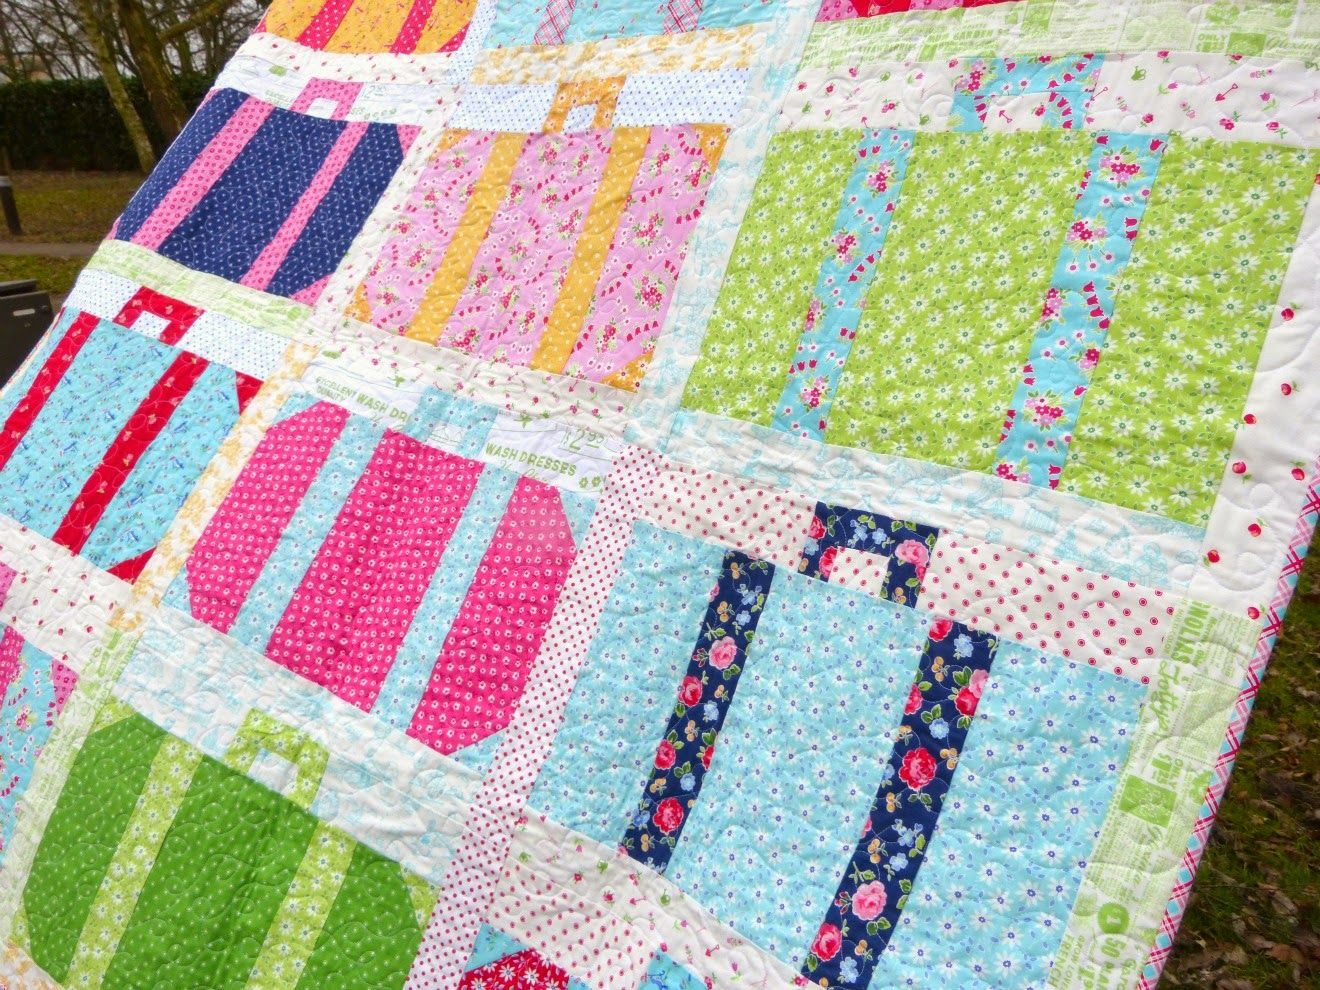 vintage luggage suitcase quilt | Pam Kitty Picnic | Pinterest